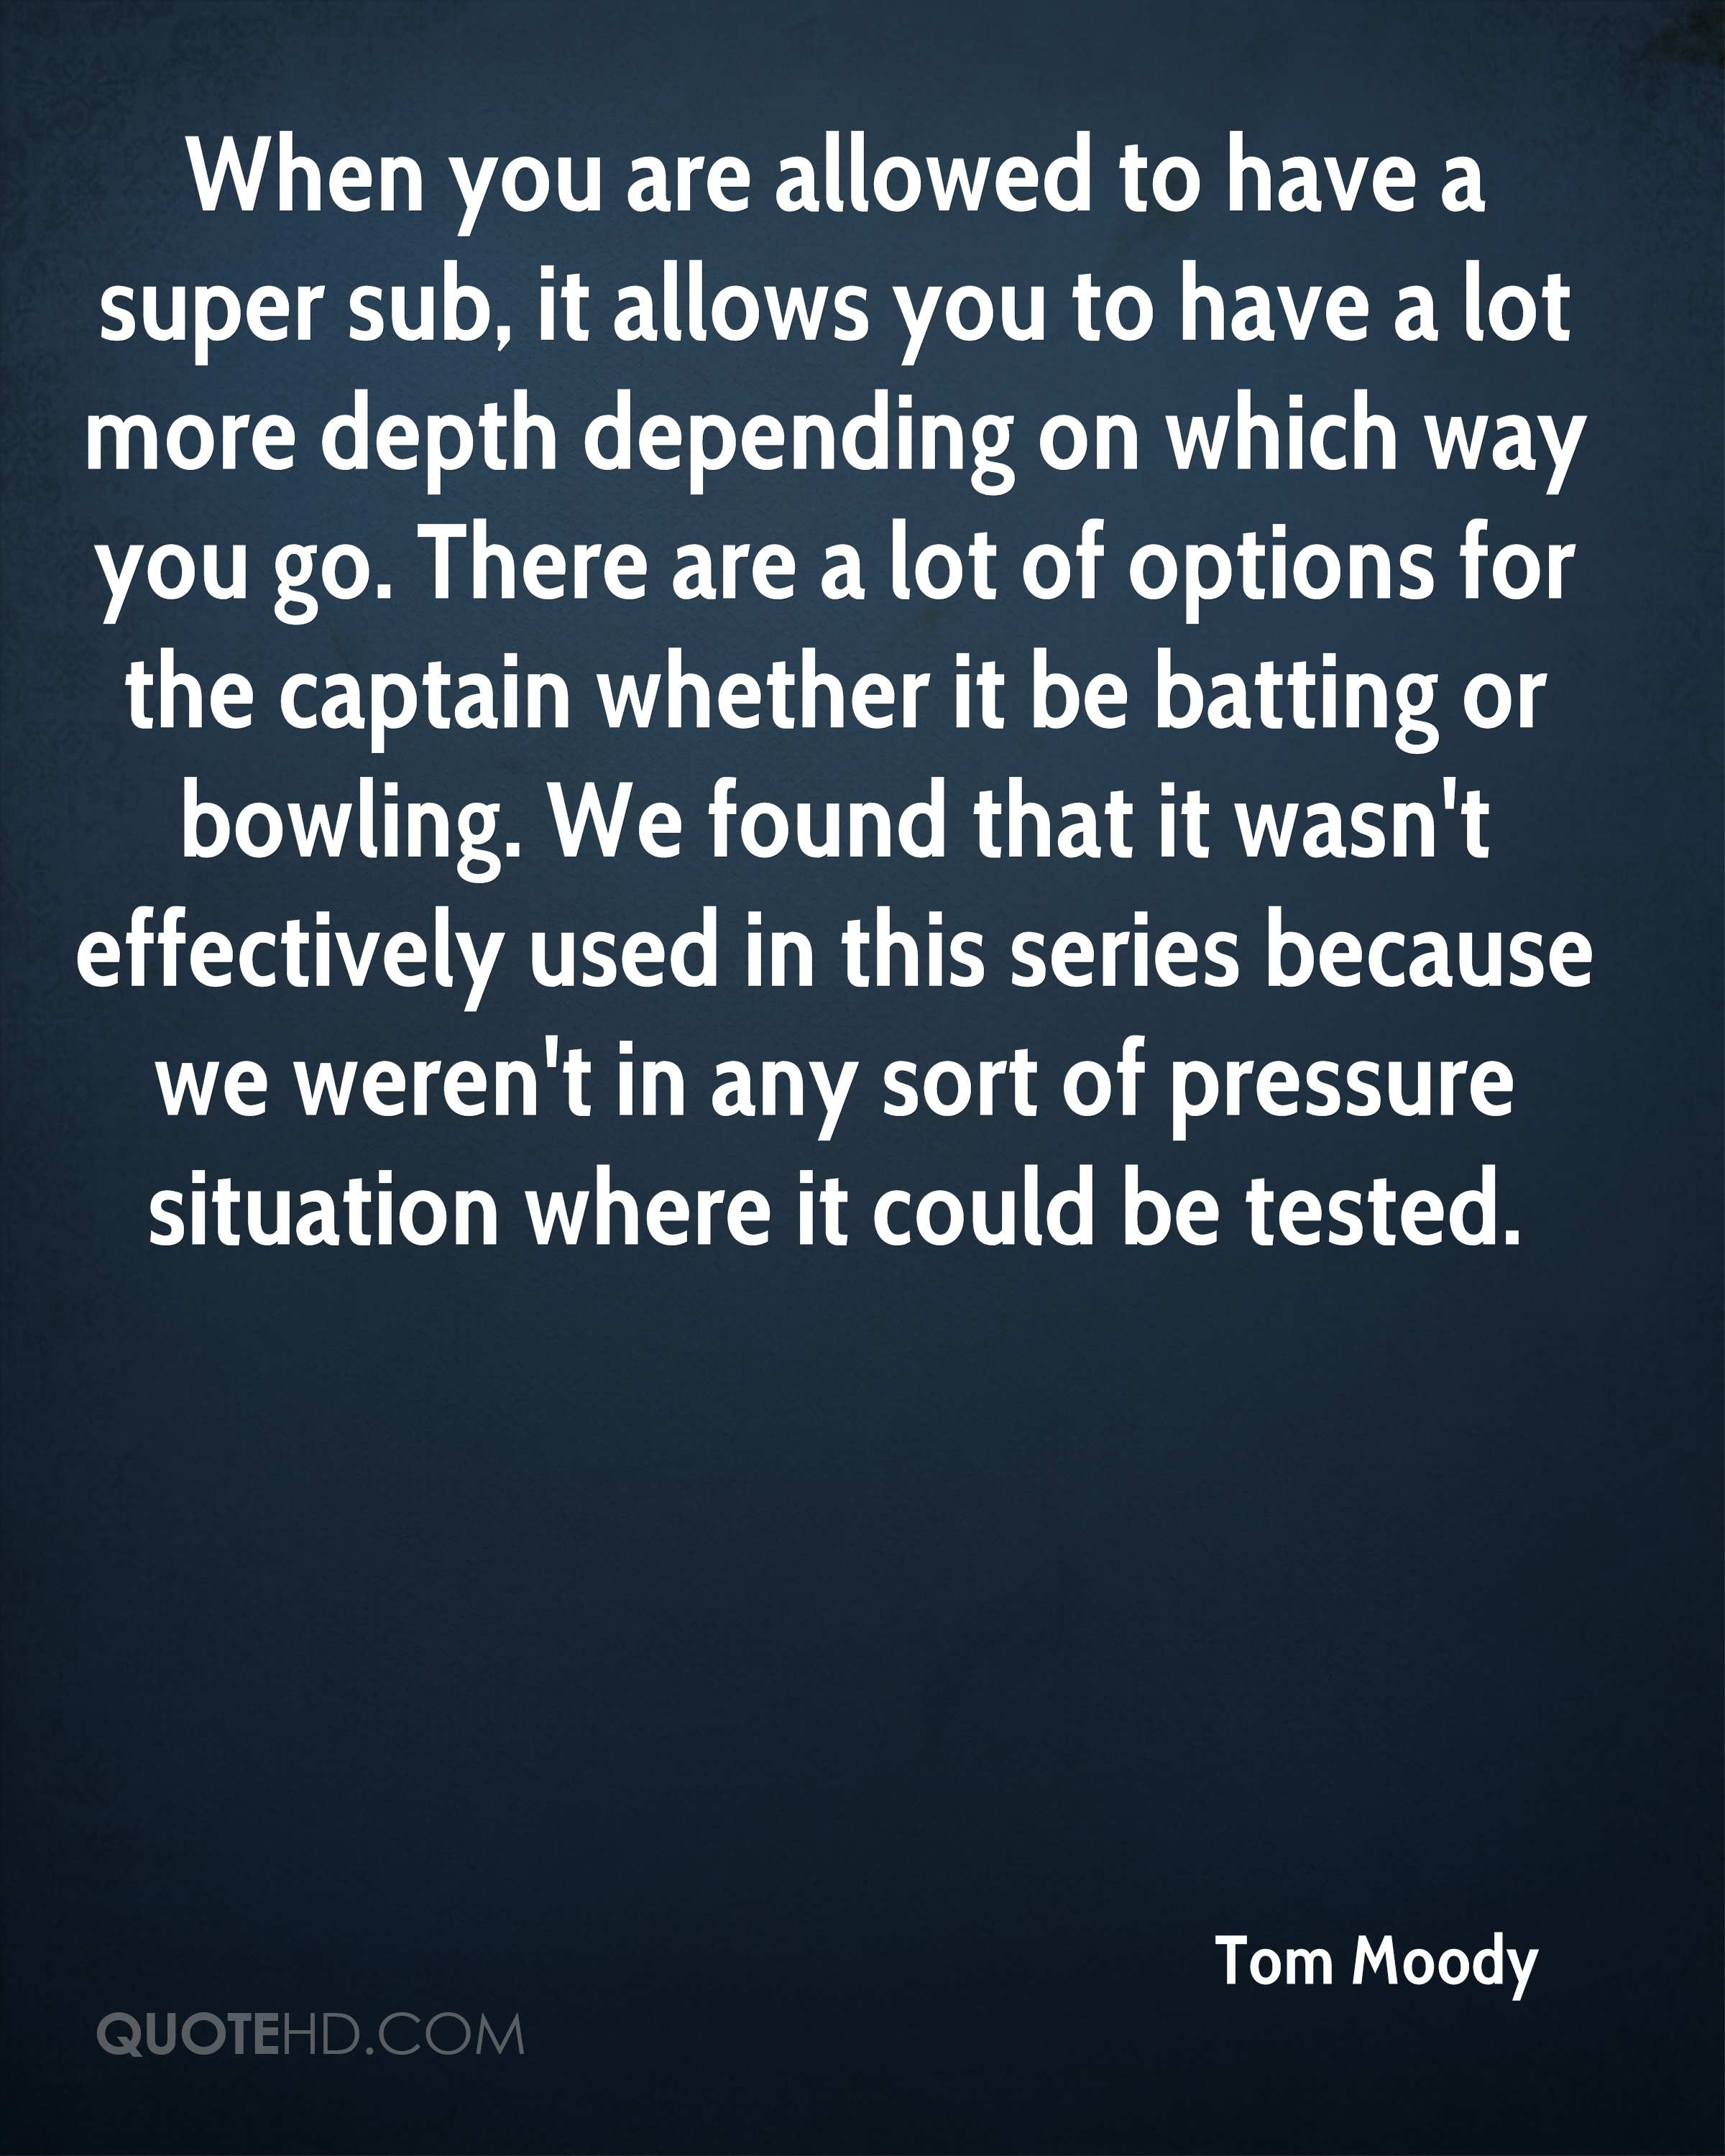 When you are allowed to have a super sub, it allows you to have a lot more depth depending on which way you go. There are a lot of options for the captain whether it be batting or bowling. We found that it wasn't effectively used in this series because we weren't in any sort of pressure situation where it could be tested.